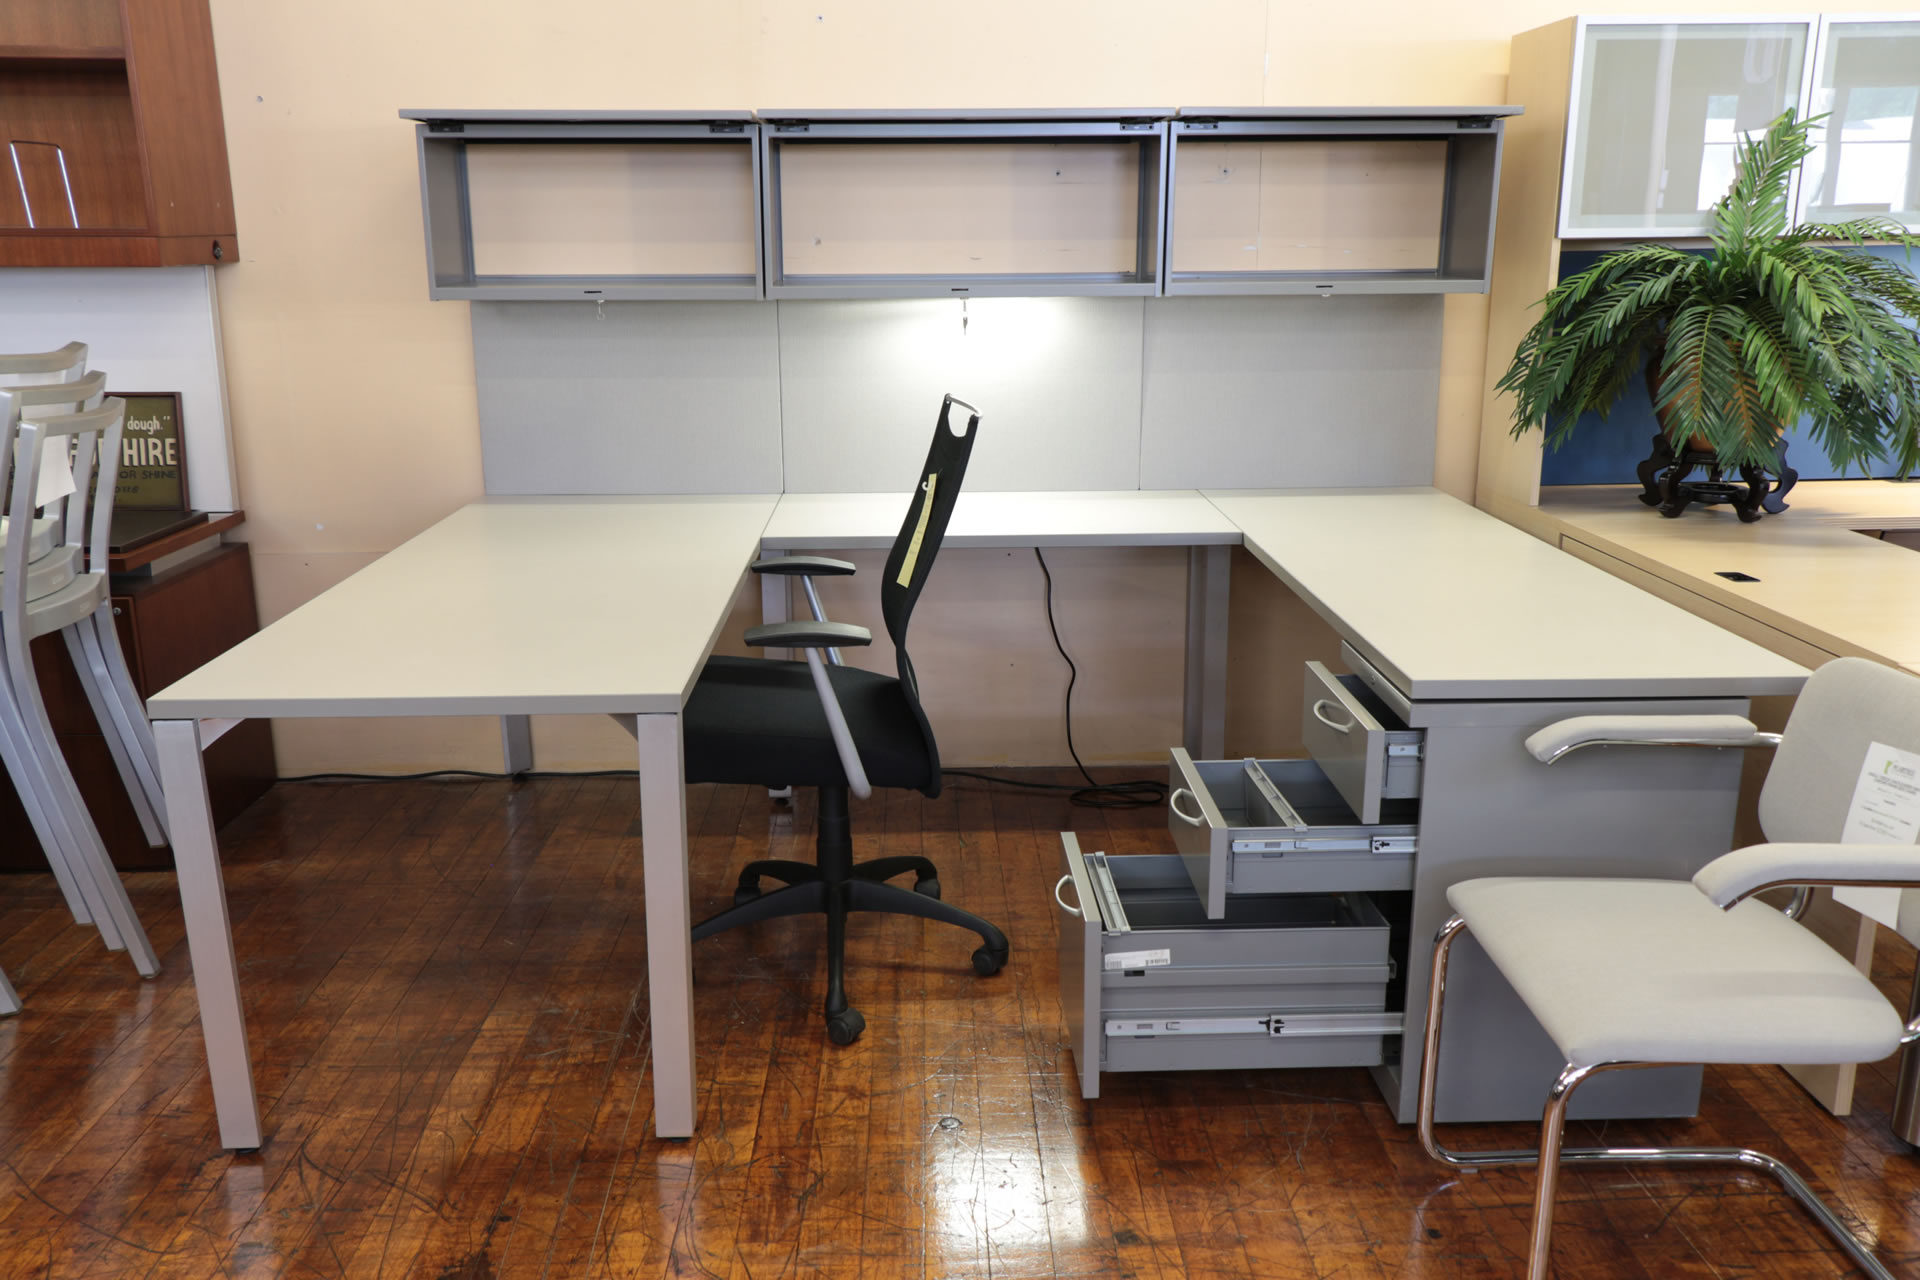 peartreeofficefurniture_peartreeofficefurniture_peartreeofficefurniture_2015-06-24_20-21-14.jpg